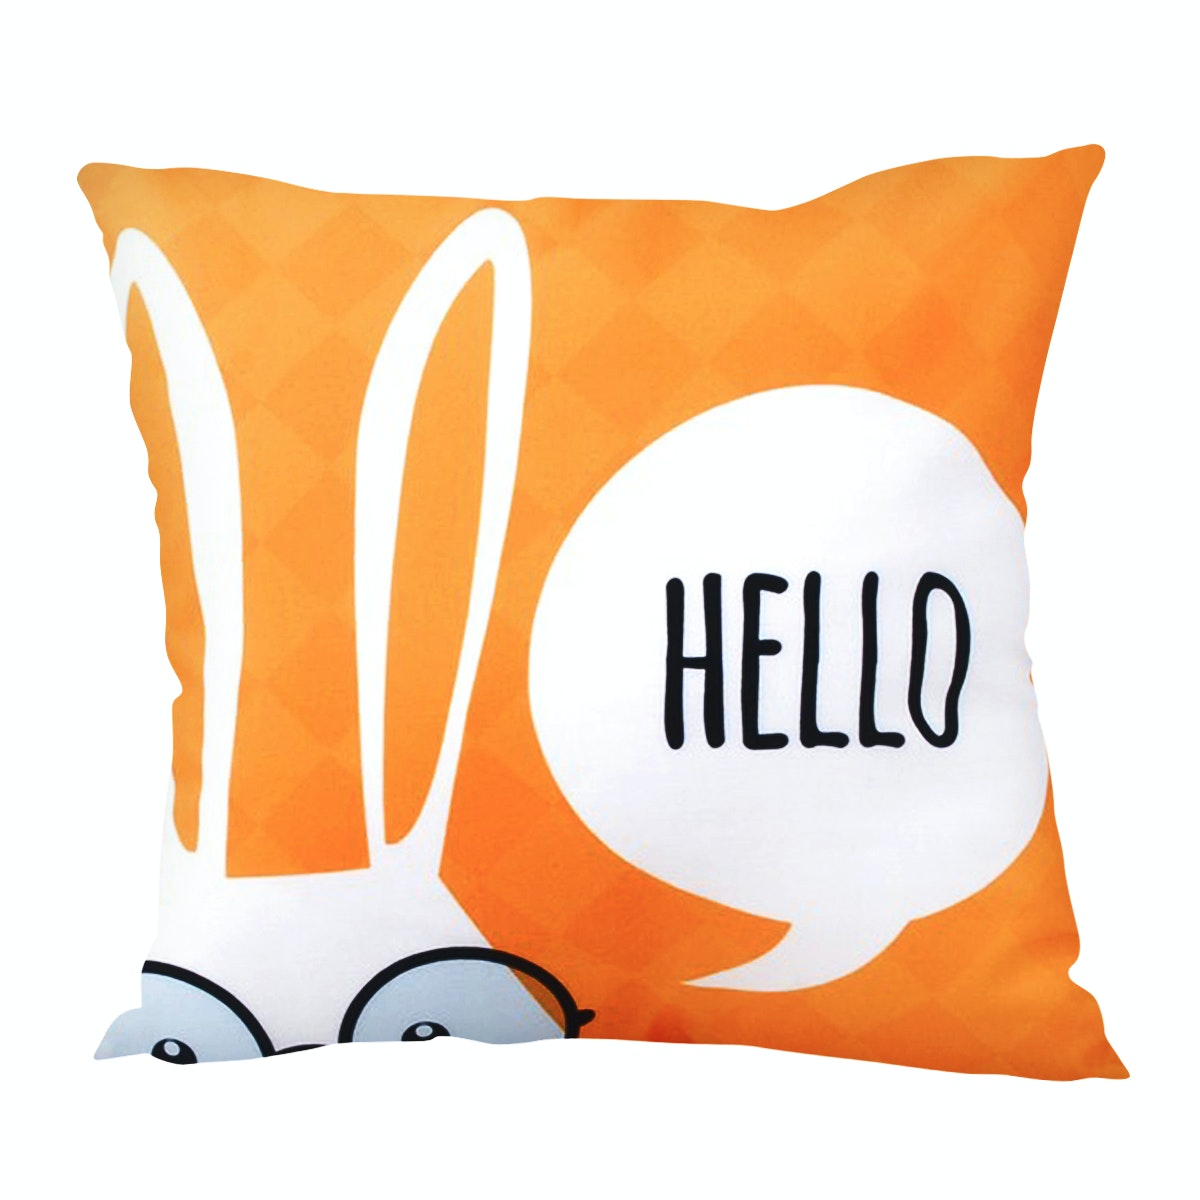 Glerry Home Decor Hello Yellow Cushion 40x40cm (Insert+Cover)